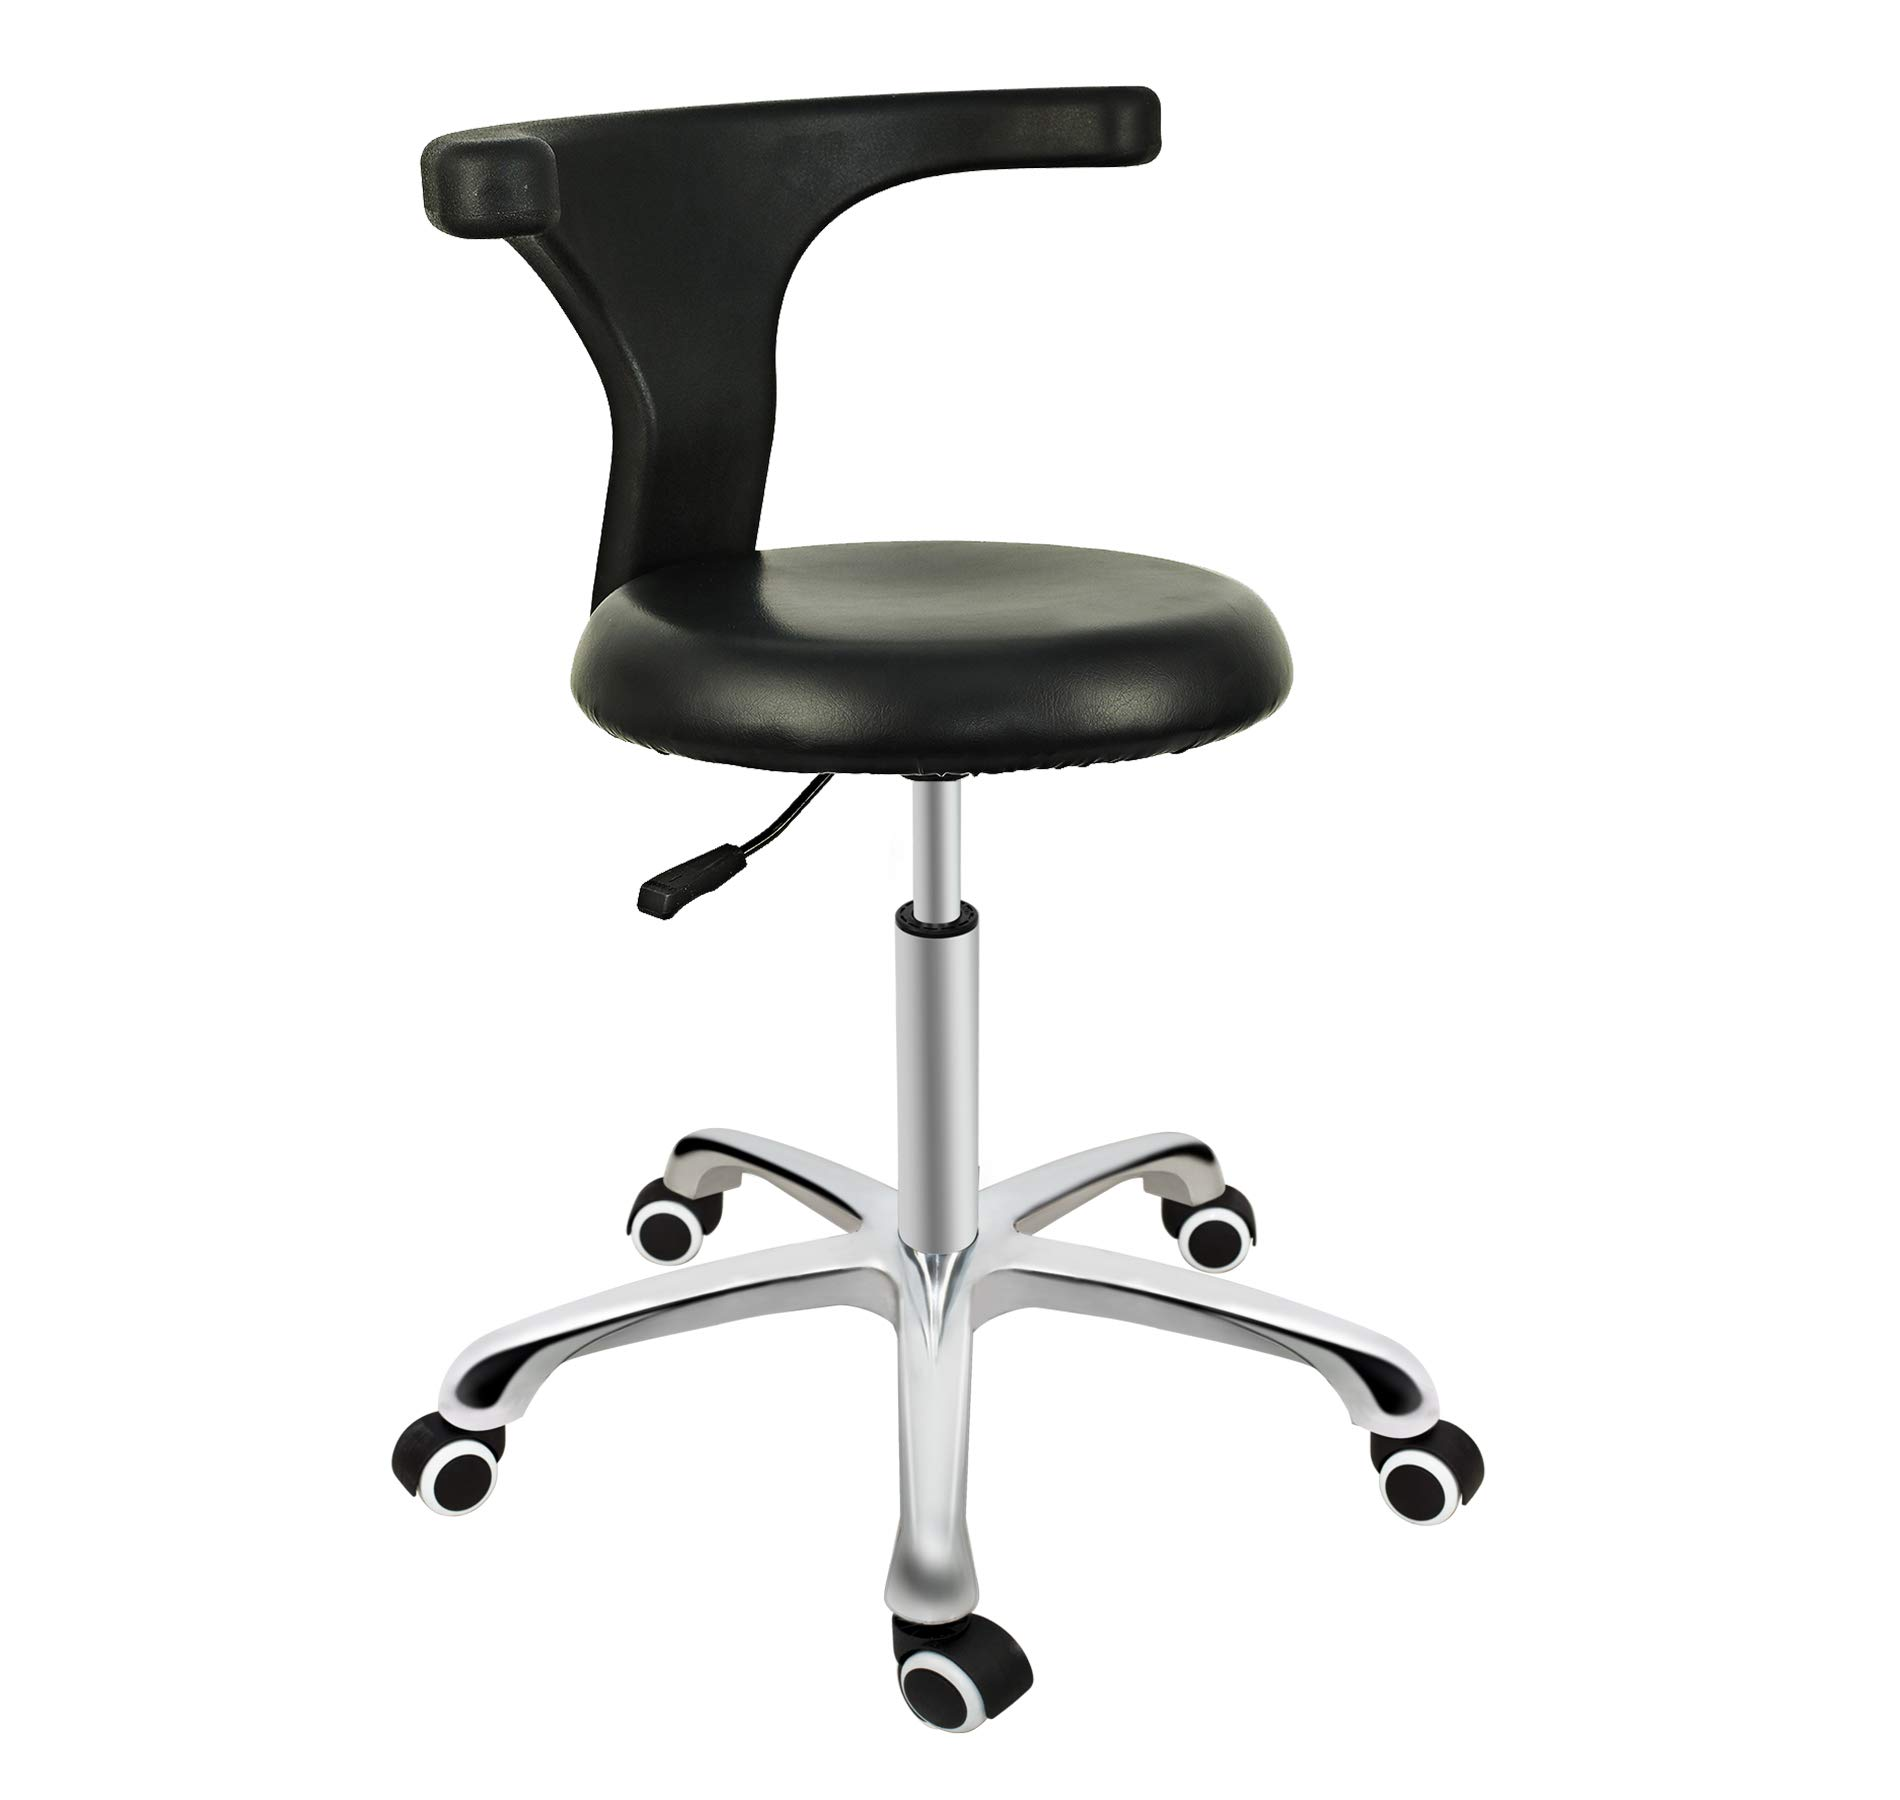 Grace & Grace Professional Task Stool Chair LUX Series Extra Large Seat Rolling Swivel Pneumatic Adjustable Heavy Duty for Dentist, Shop, Office and Home (with Backrest Steel Base, Black) by Grace & Grace